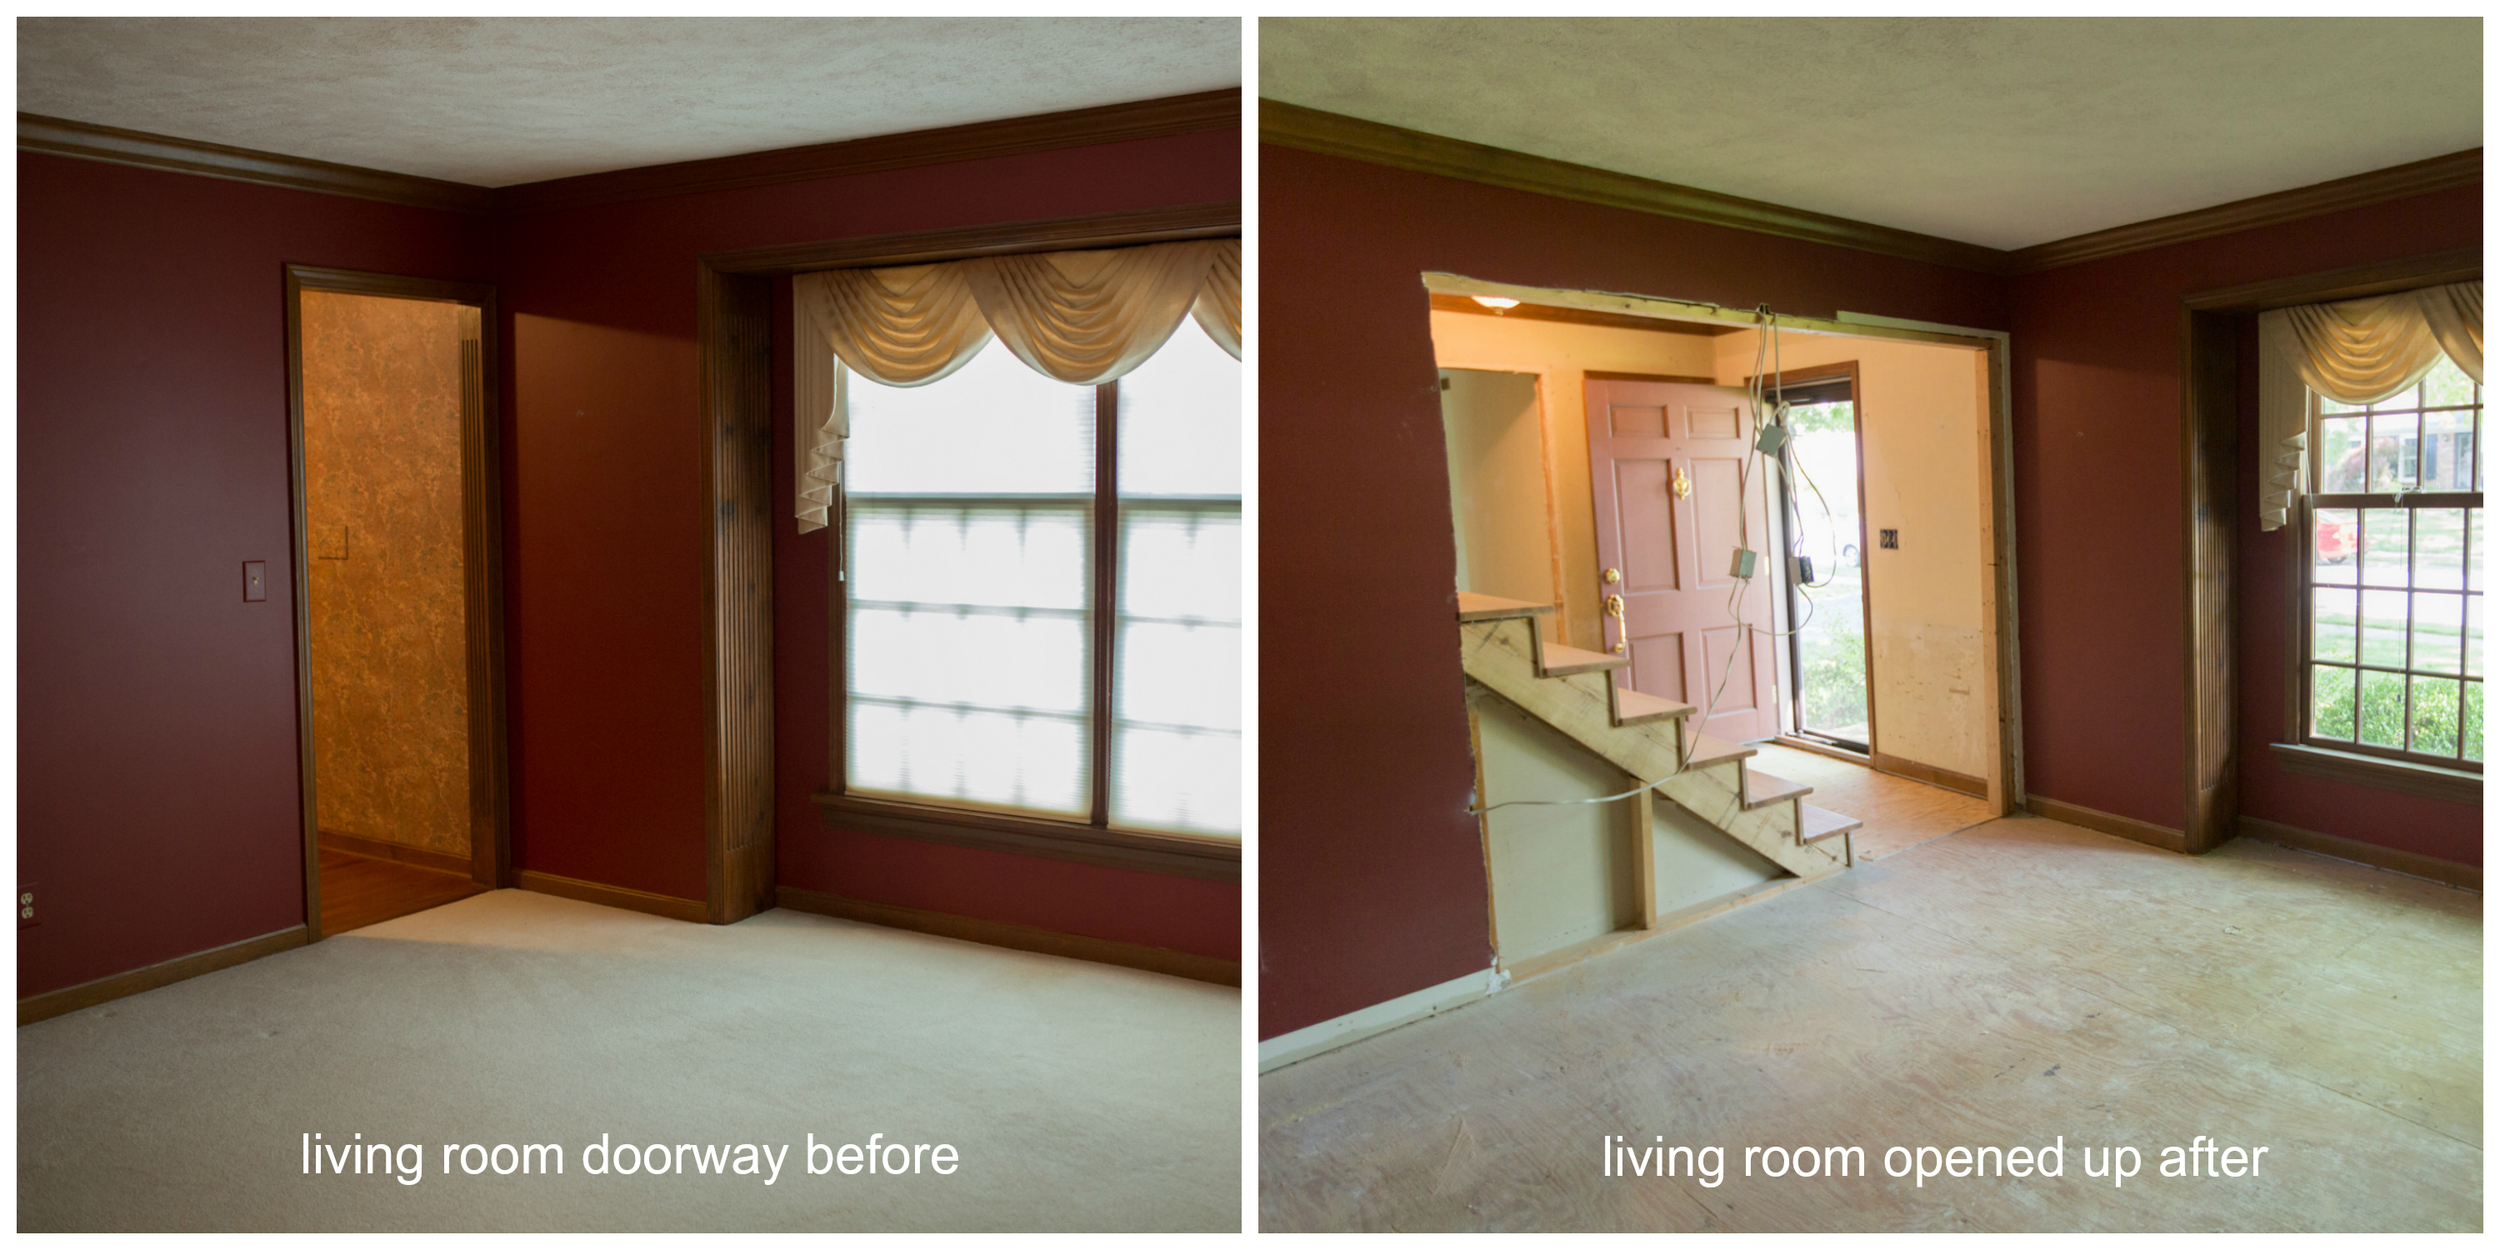 The formal living room entry widened home renovation project